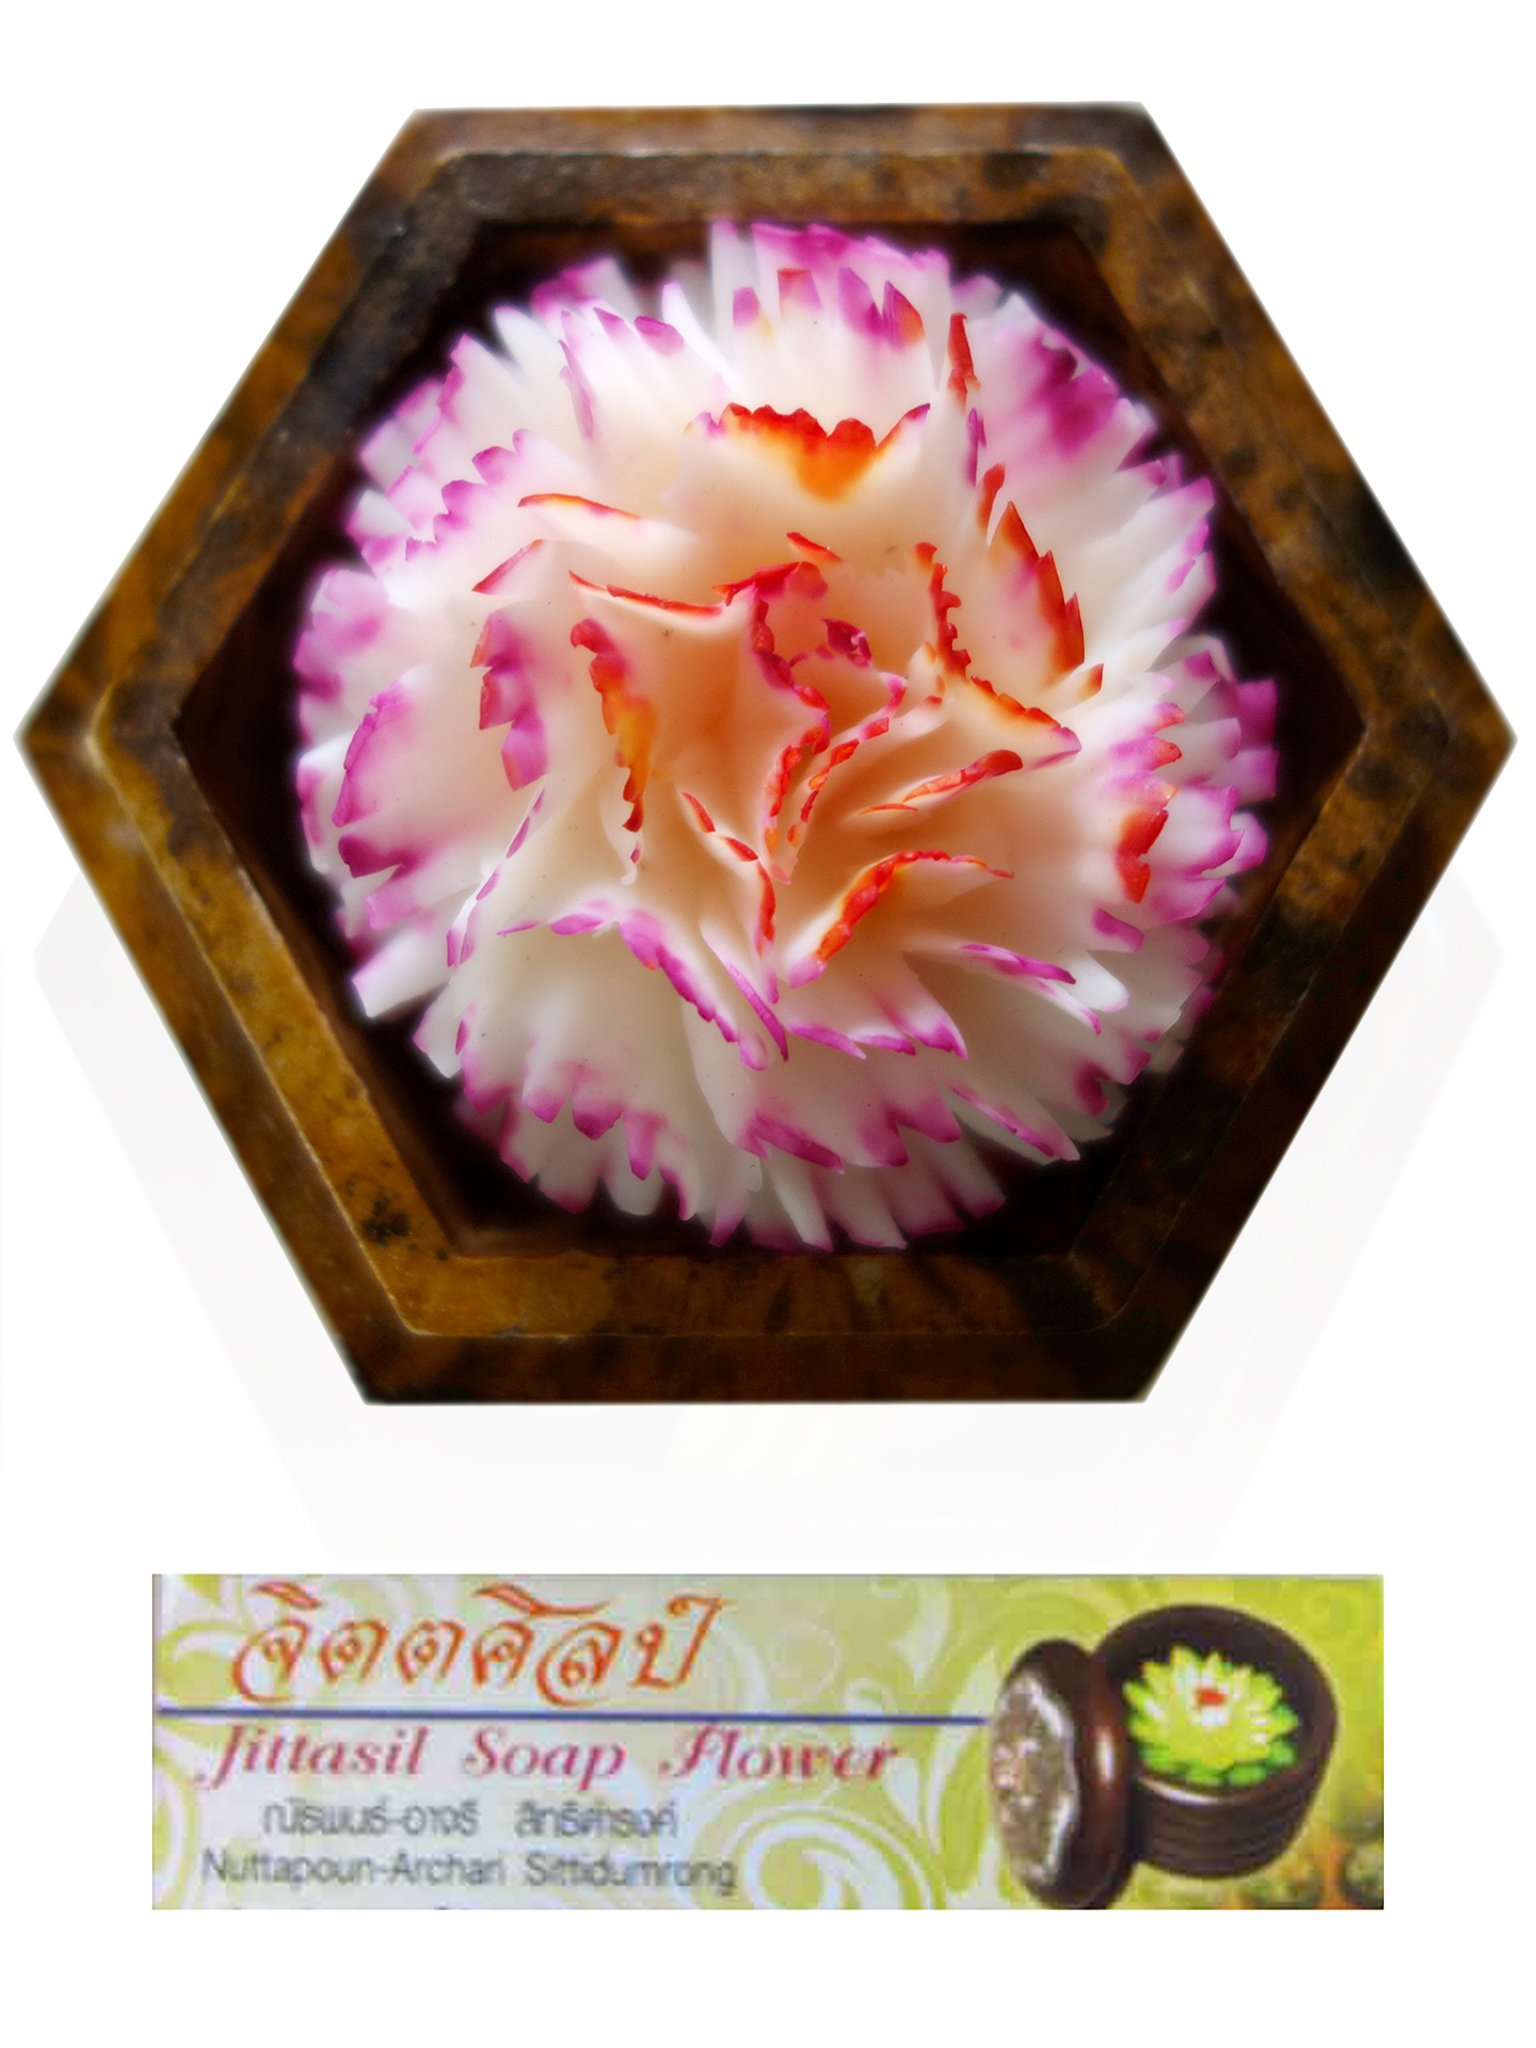 Jittasil Thai Hand-Carved Soap Flower, 4 Inch Scented Soap Carving Gift-Set, White Carnation In Decorative Hexagonal Pine Wood Case by Jittasil Hand-Carved Soap